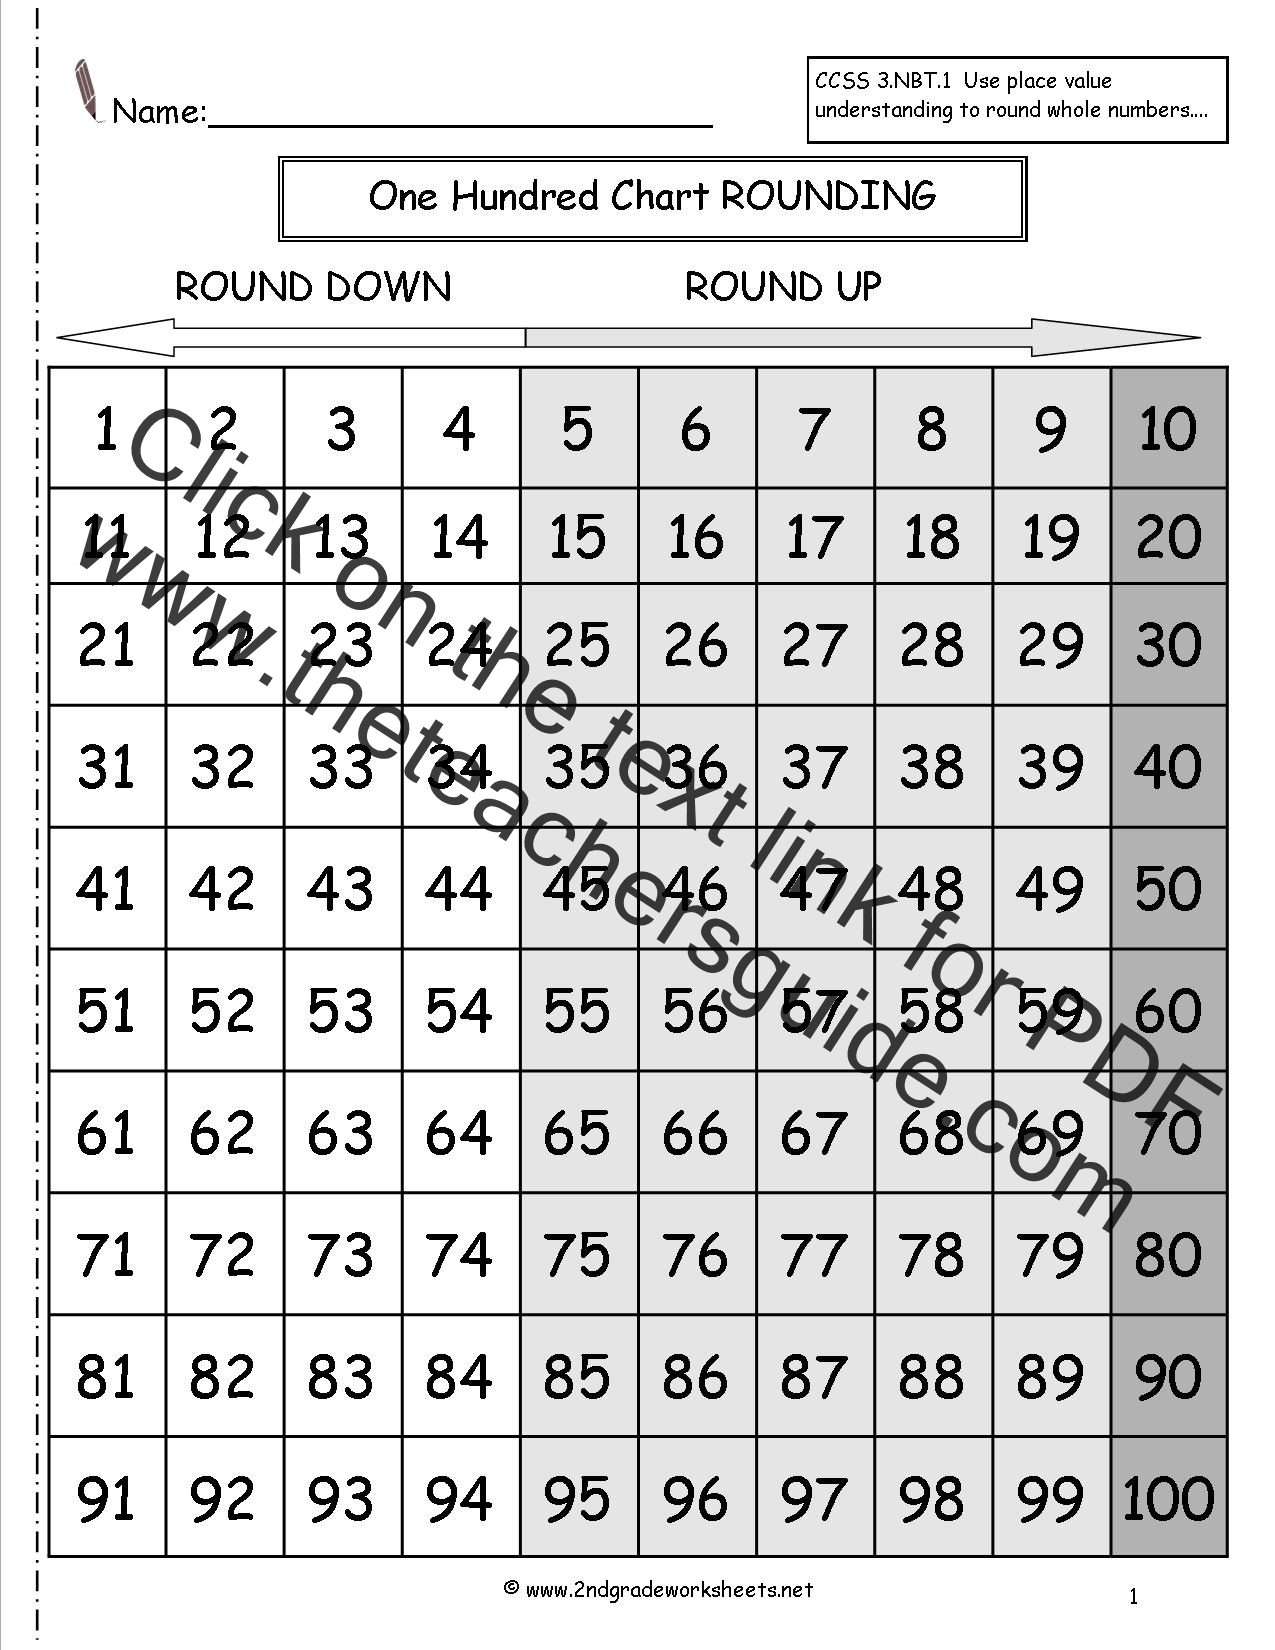 worksheet Free Printable Rounding Worksheets rounding whole numbers worksheets one hundred chart worksheet